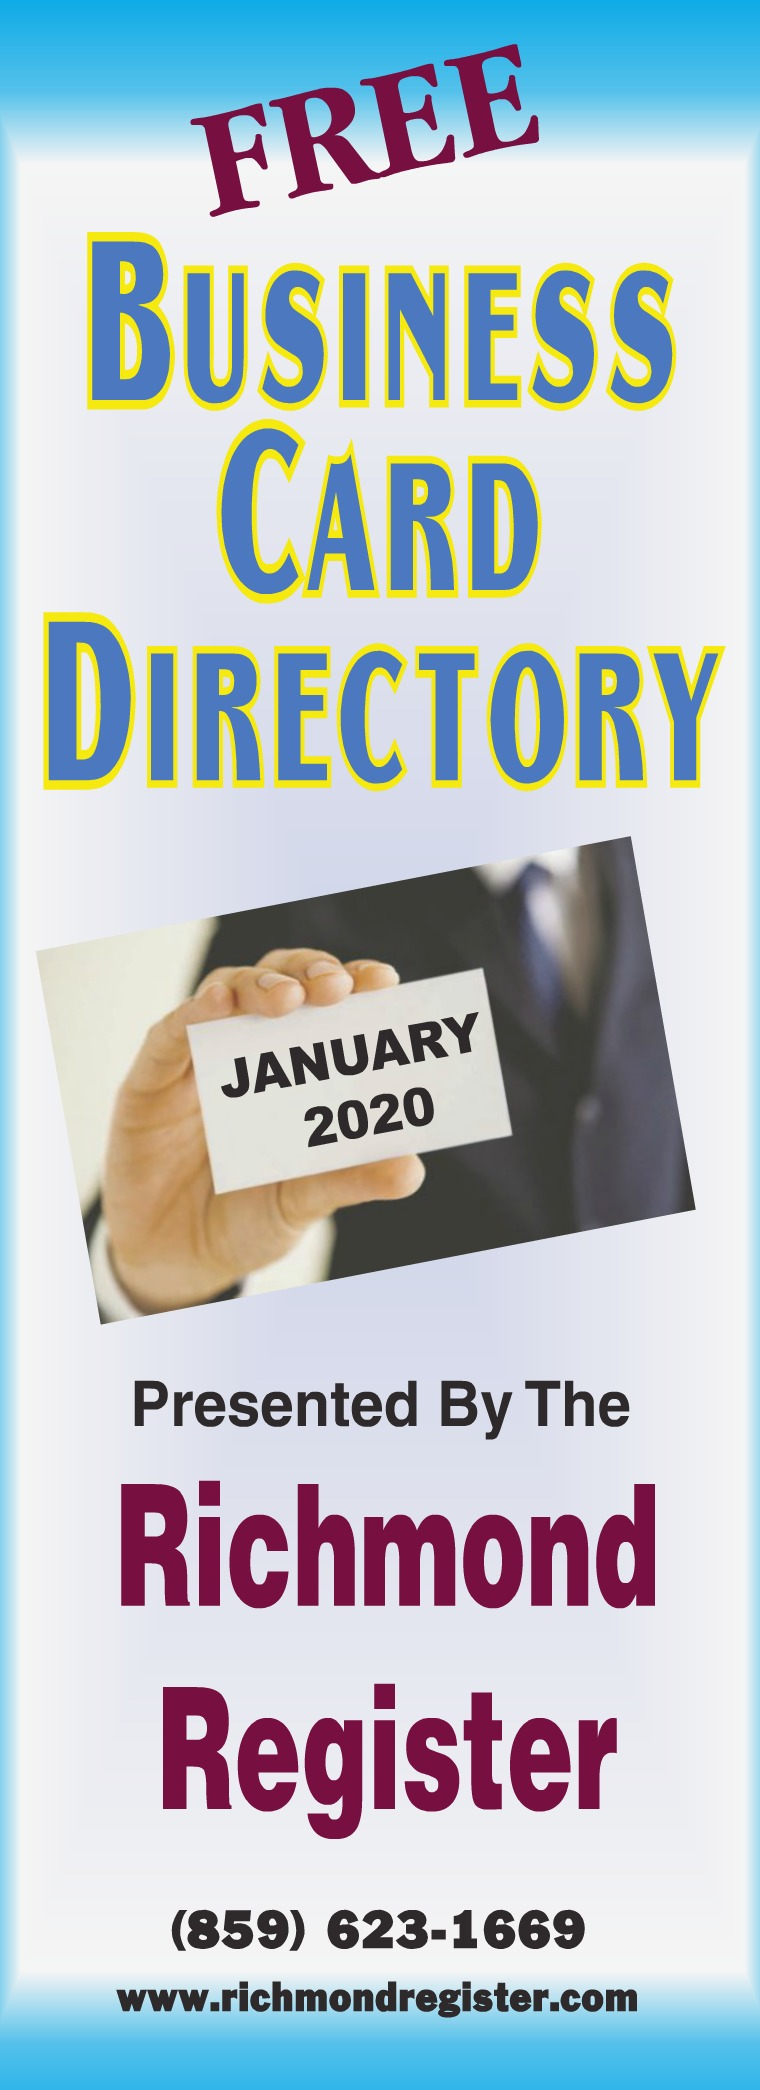 Richmond Business Card Directory January 2020